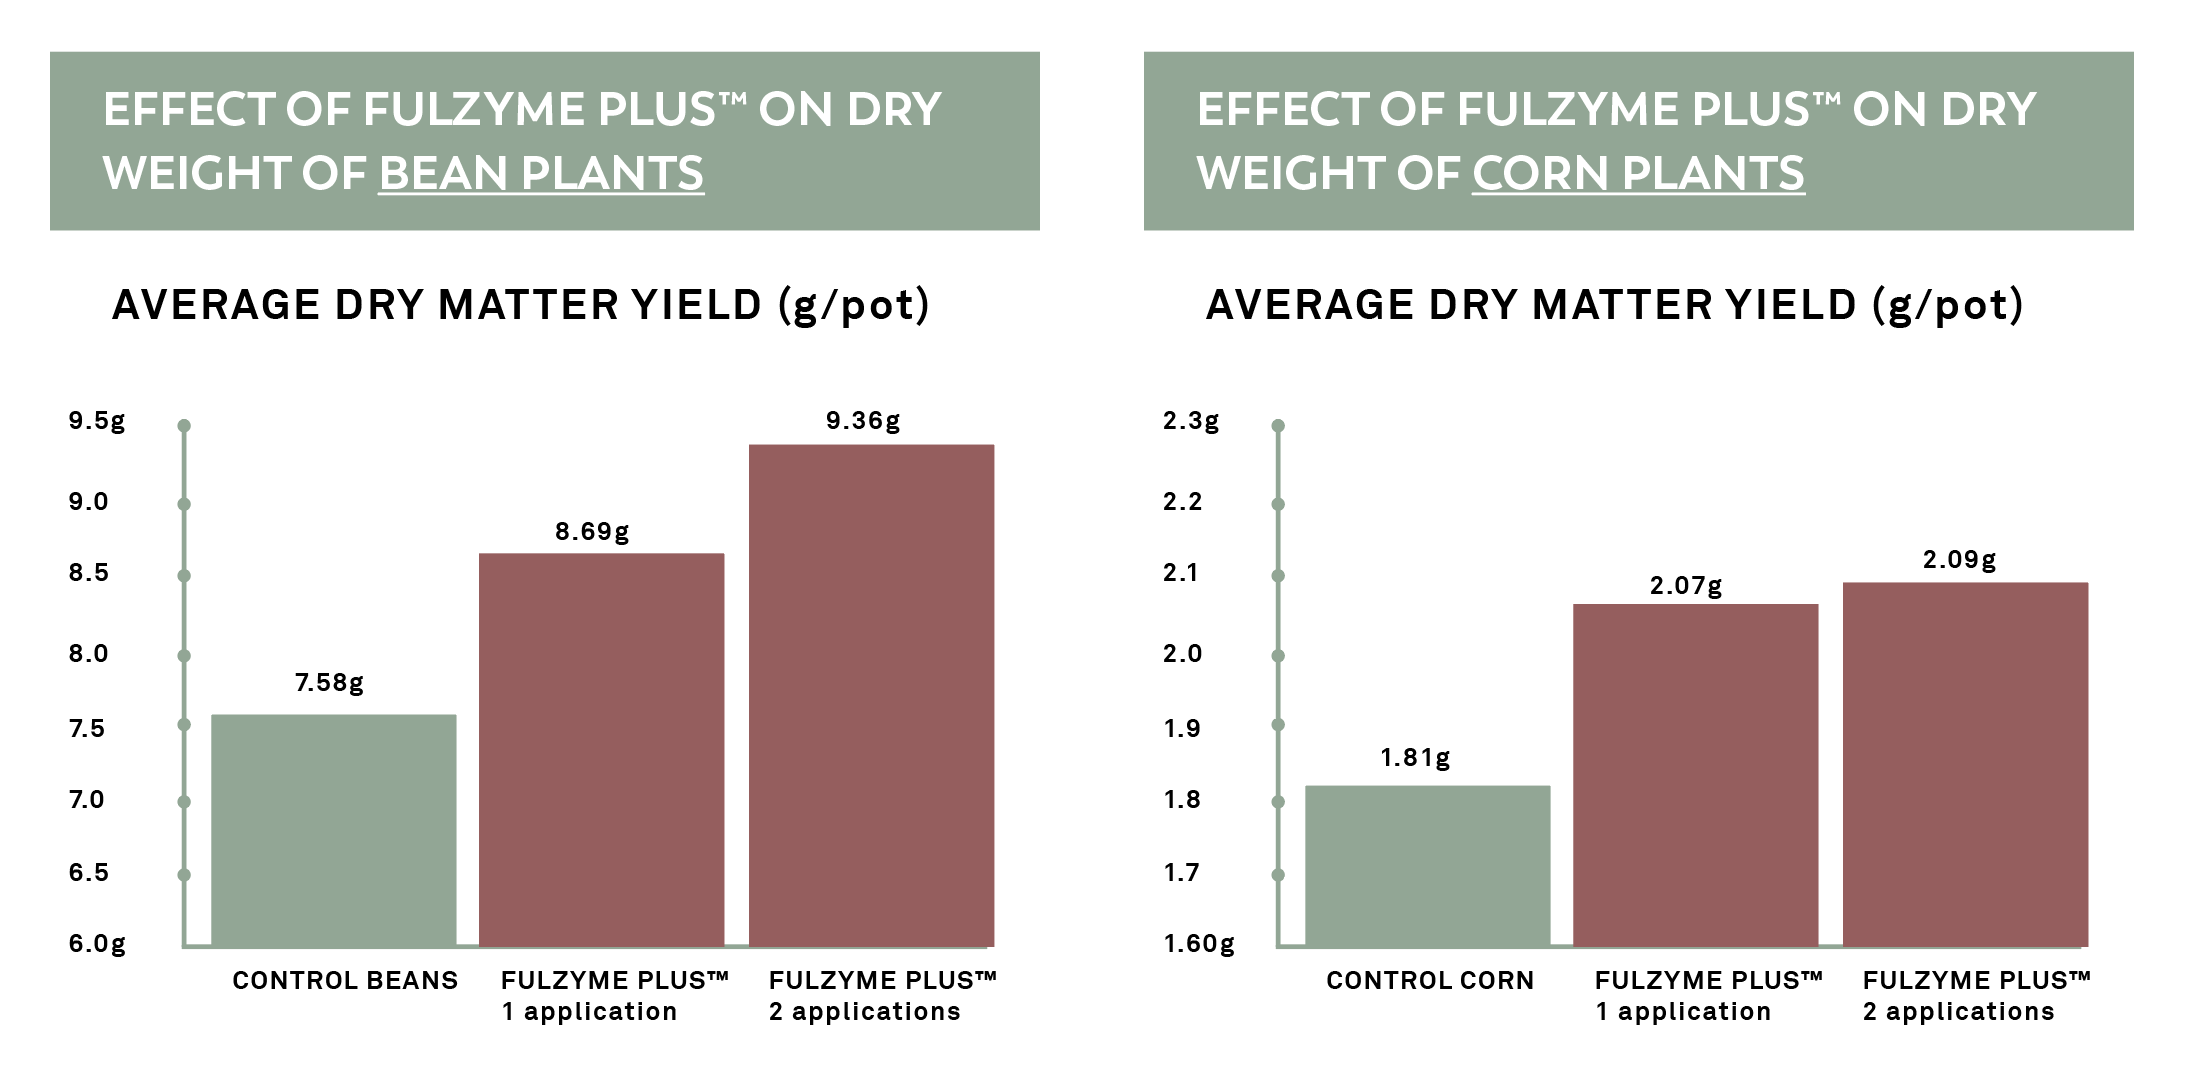 Dry Matter is significantly increased with the use of Fulzyme Plus